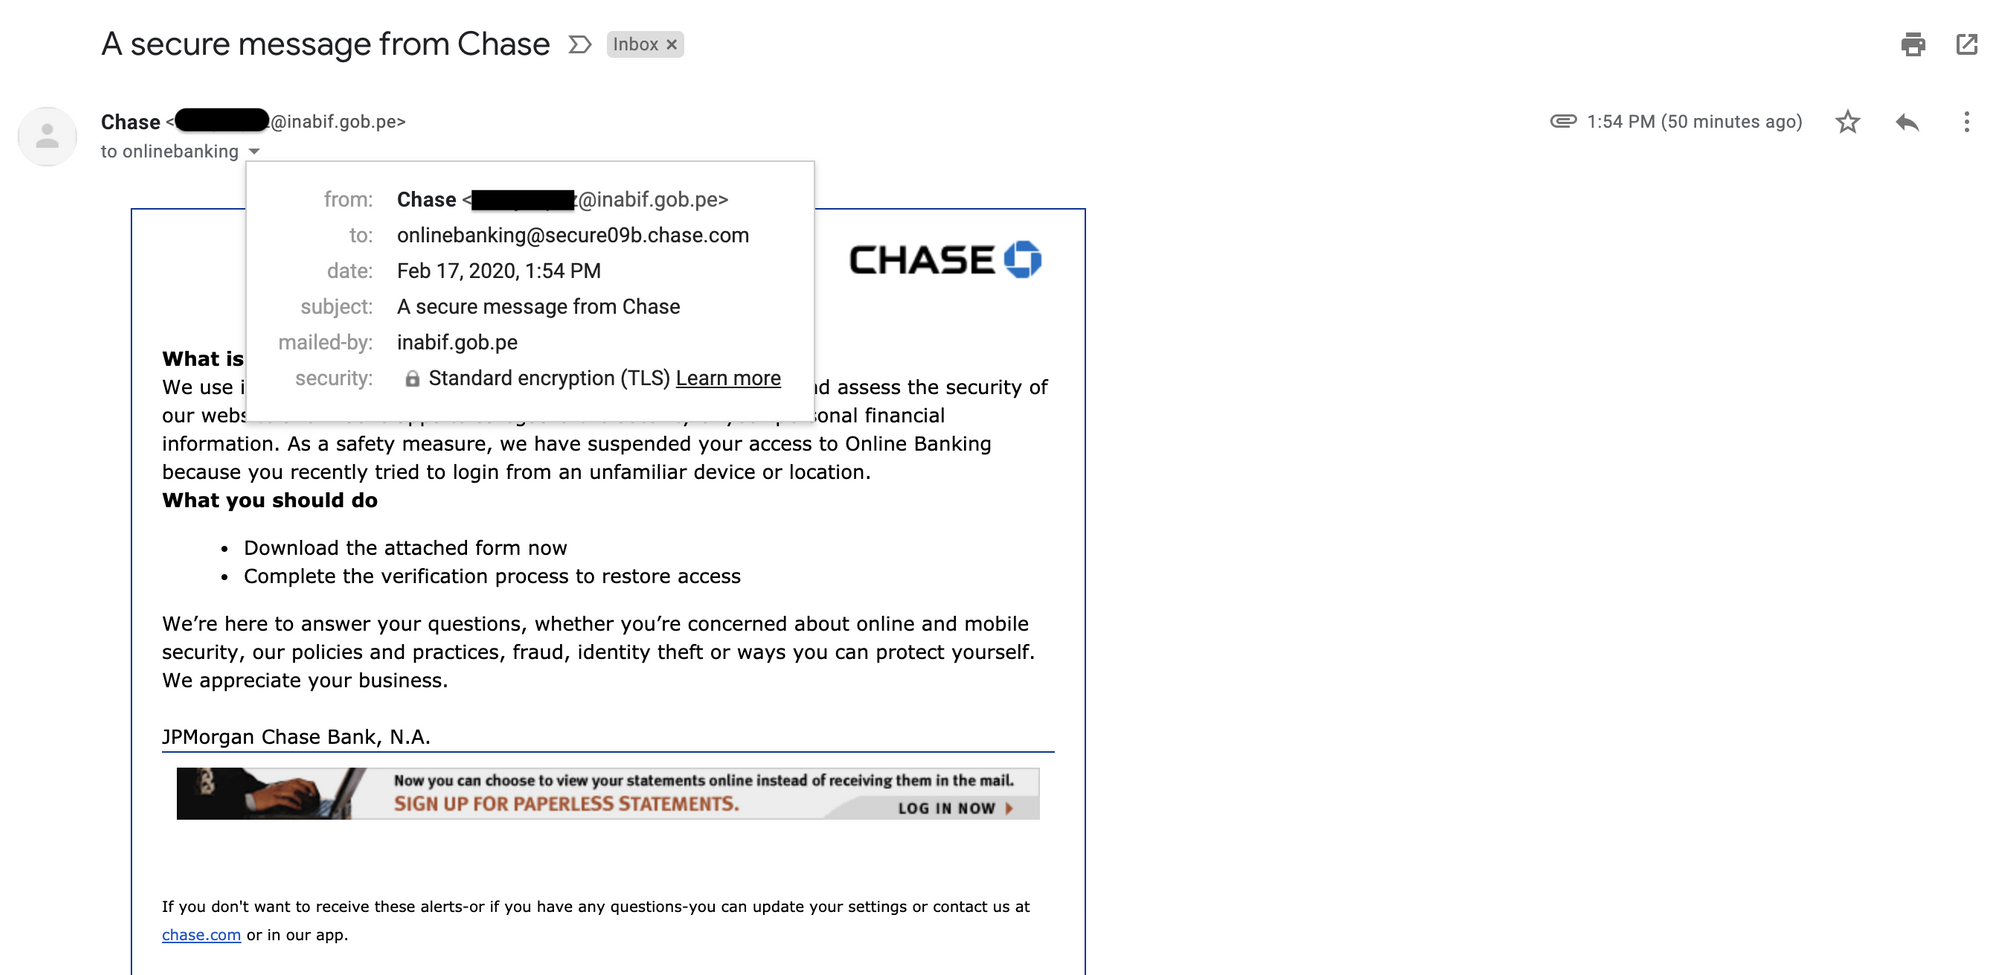 /hacked-peruvian-government-servers-are-sending-phishing-campaigns-to-chase-bank-customers-dumu3ylb feature image